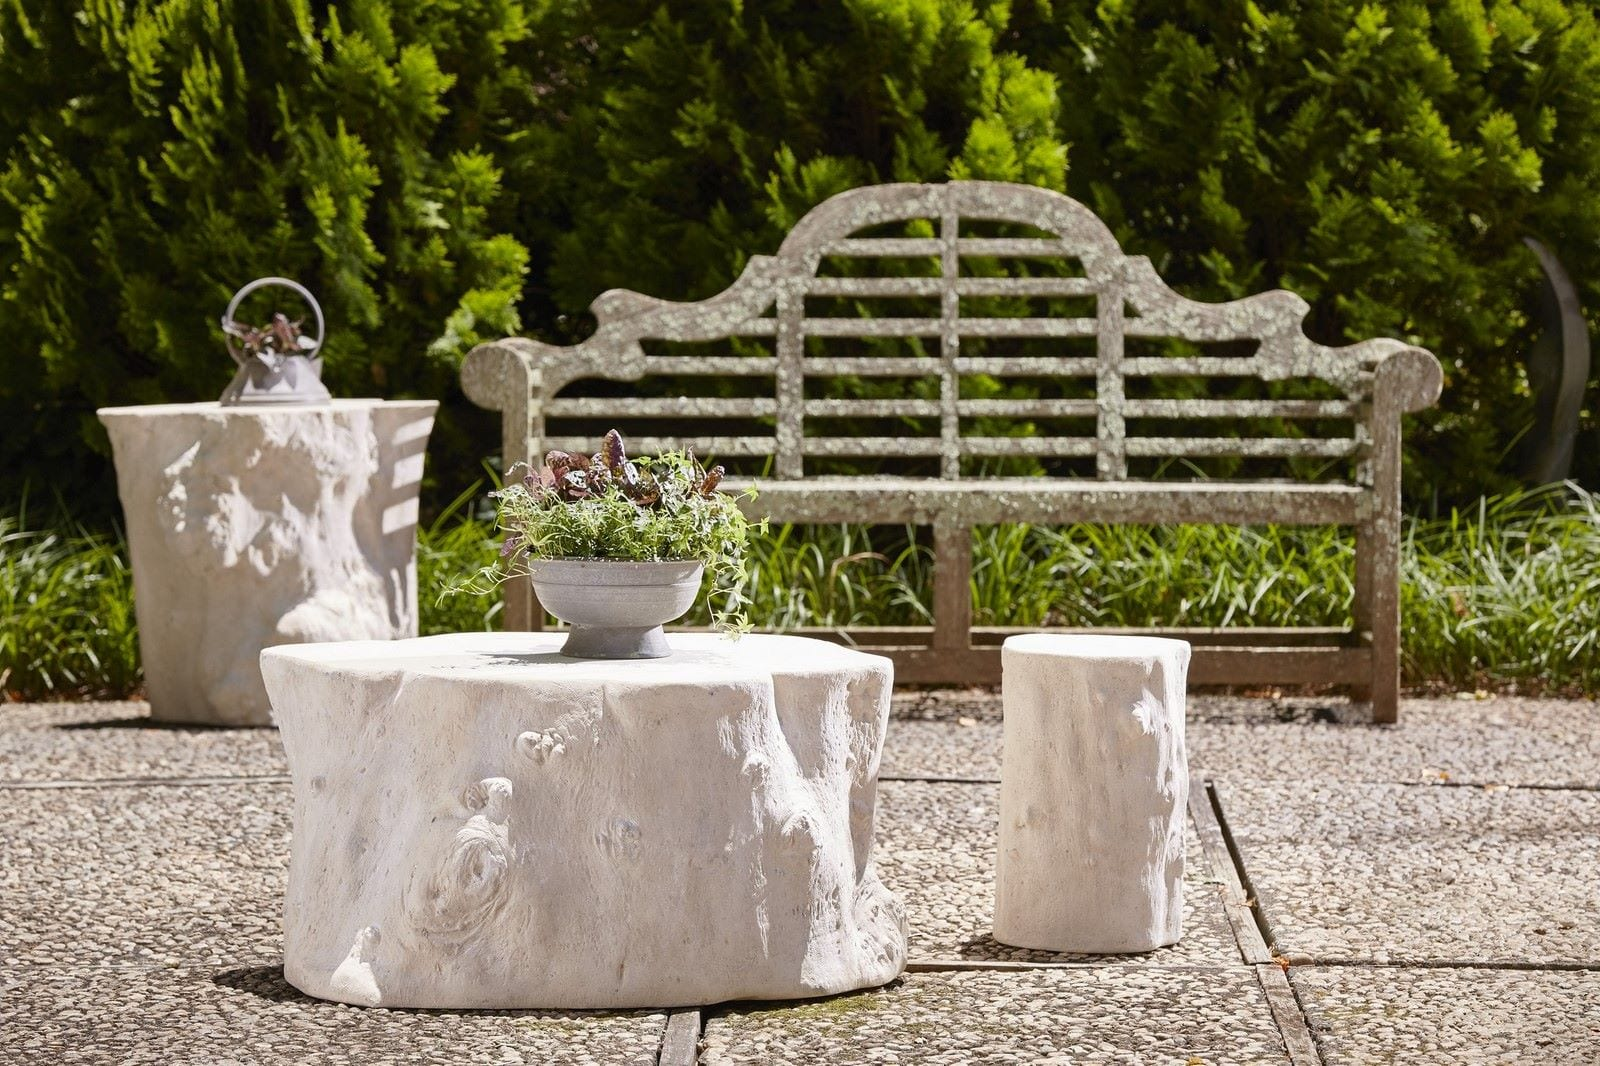 The Great Outdoors, Even Greater with Phillips Collections